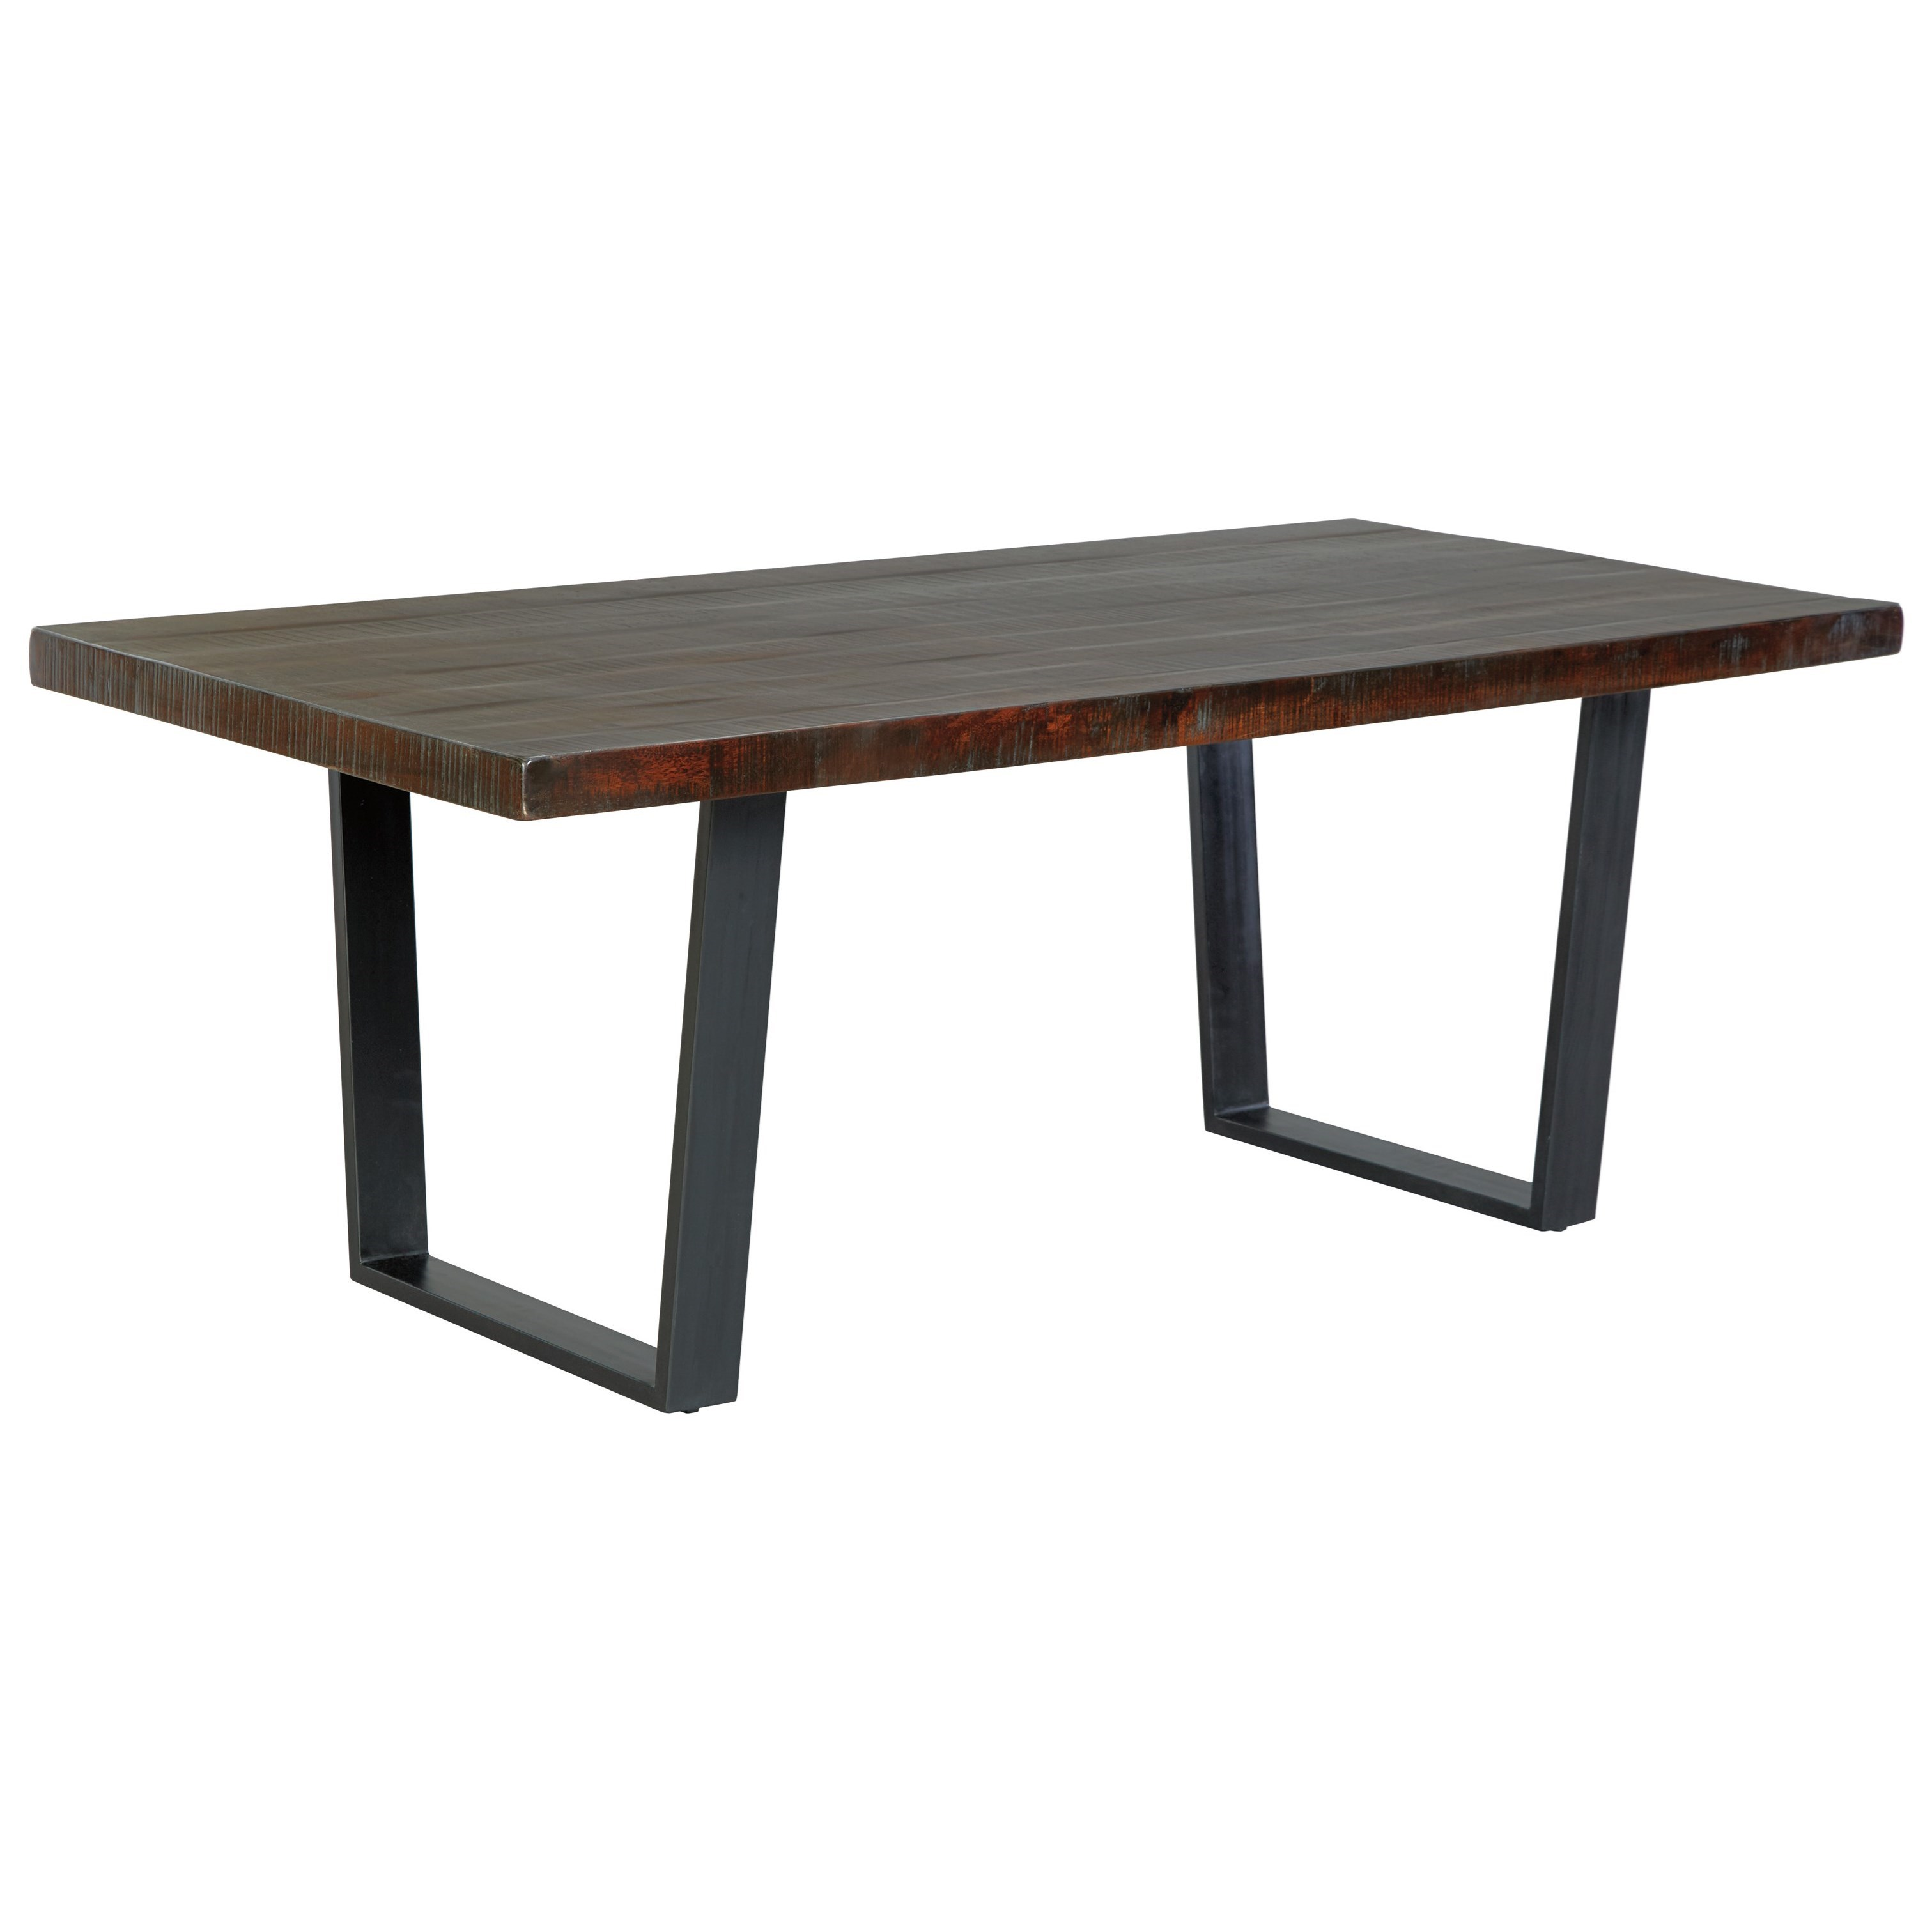 Signature design by ashley parlone modern rustic for Ashley furniture dining table